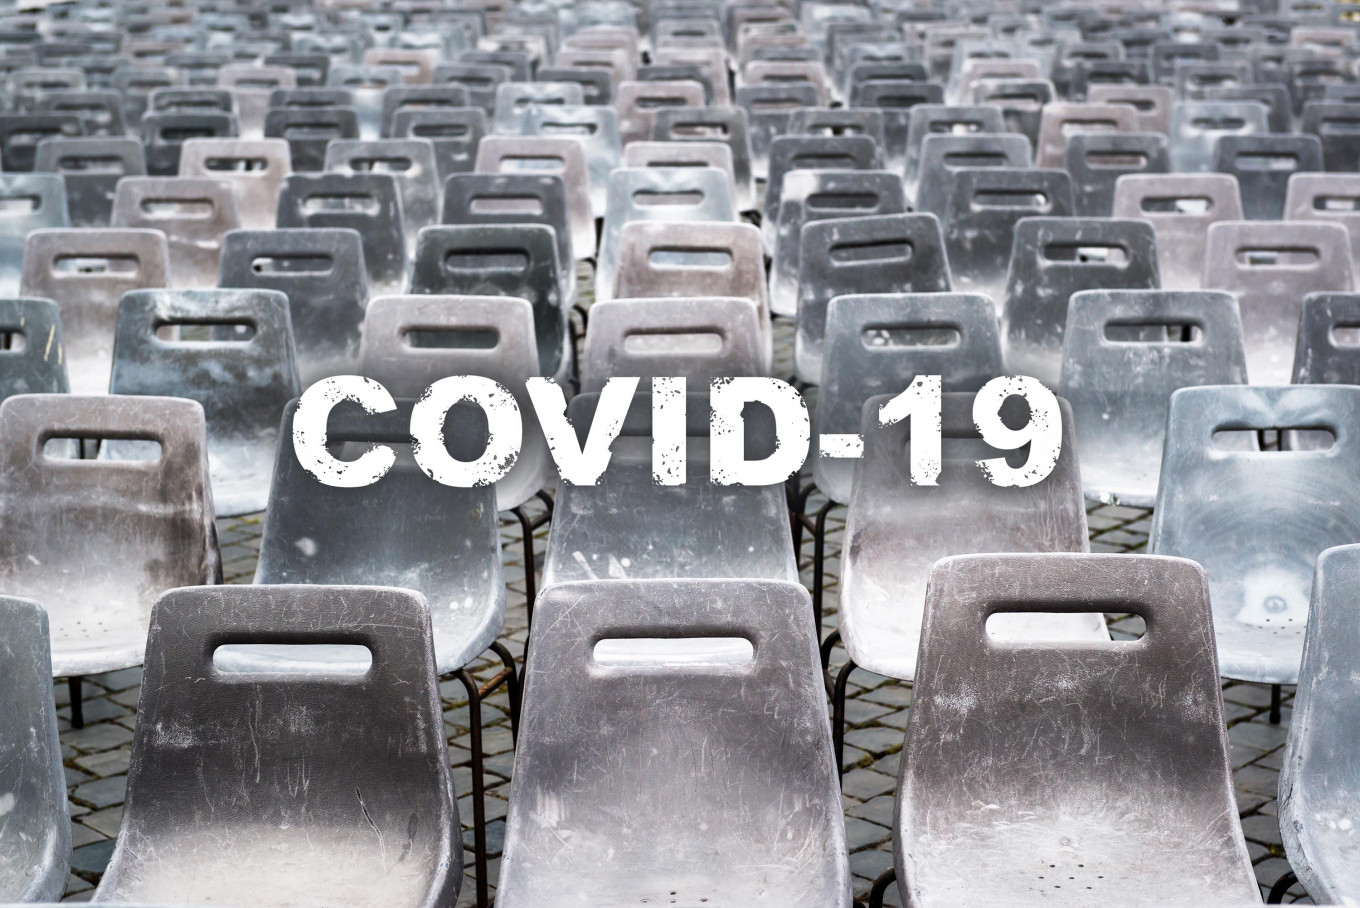 Opening up without control of COVID-19 is recipe for disaster, says WHO